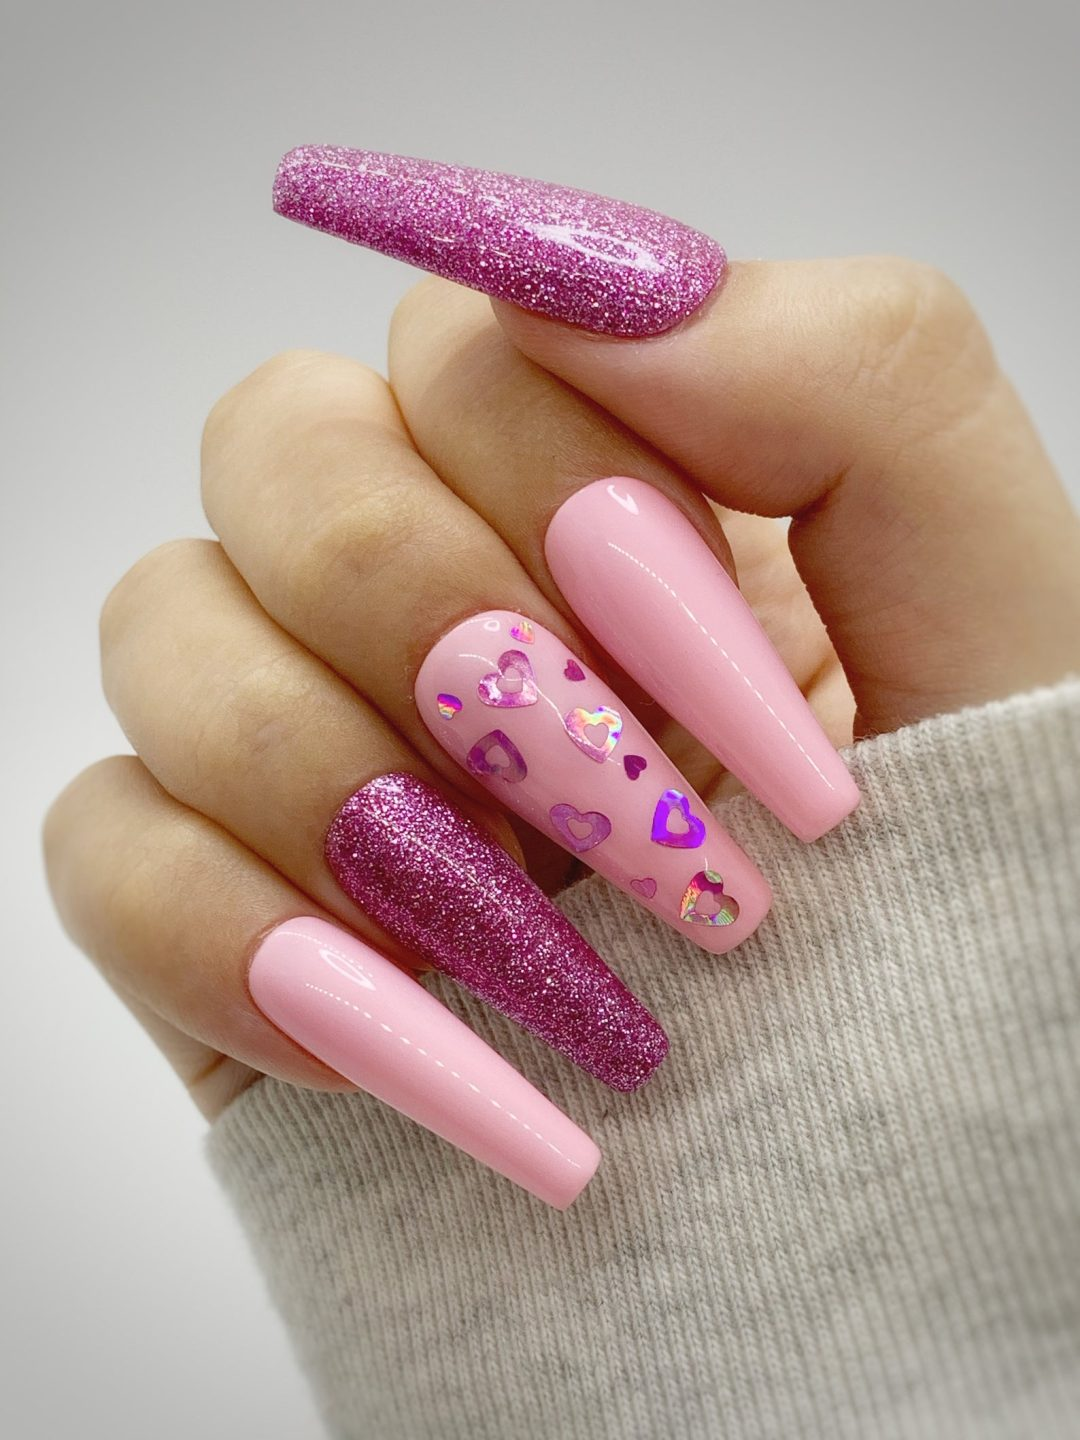 Pink heart nails with pink glitter